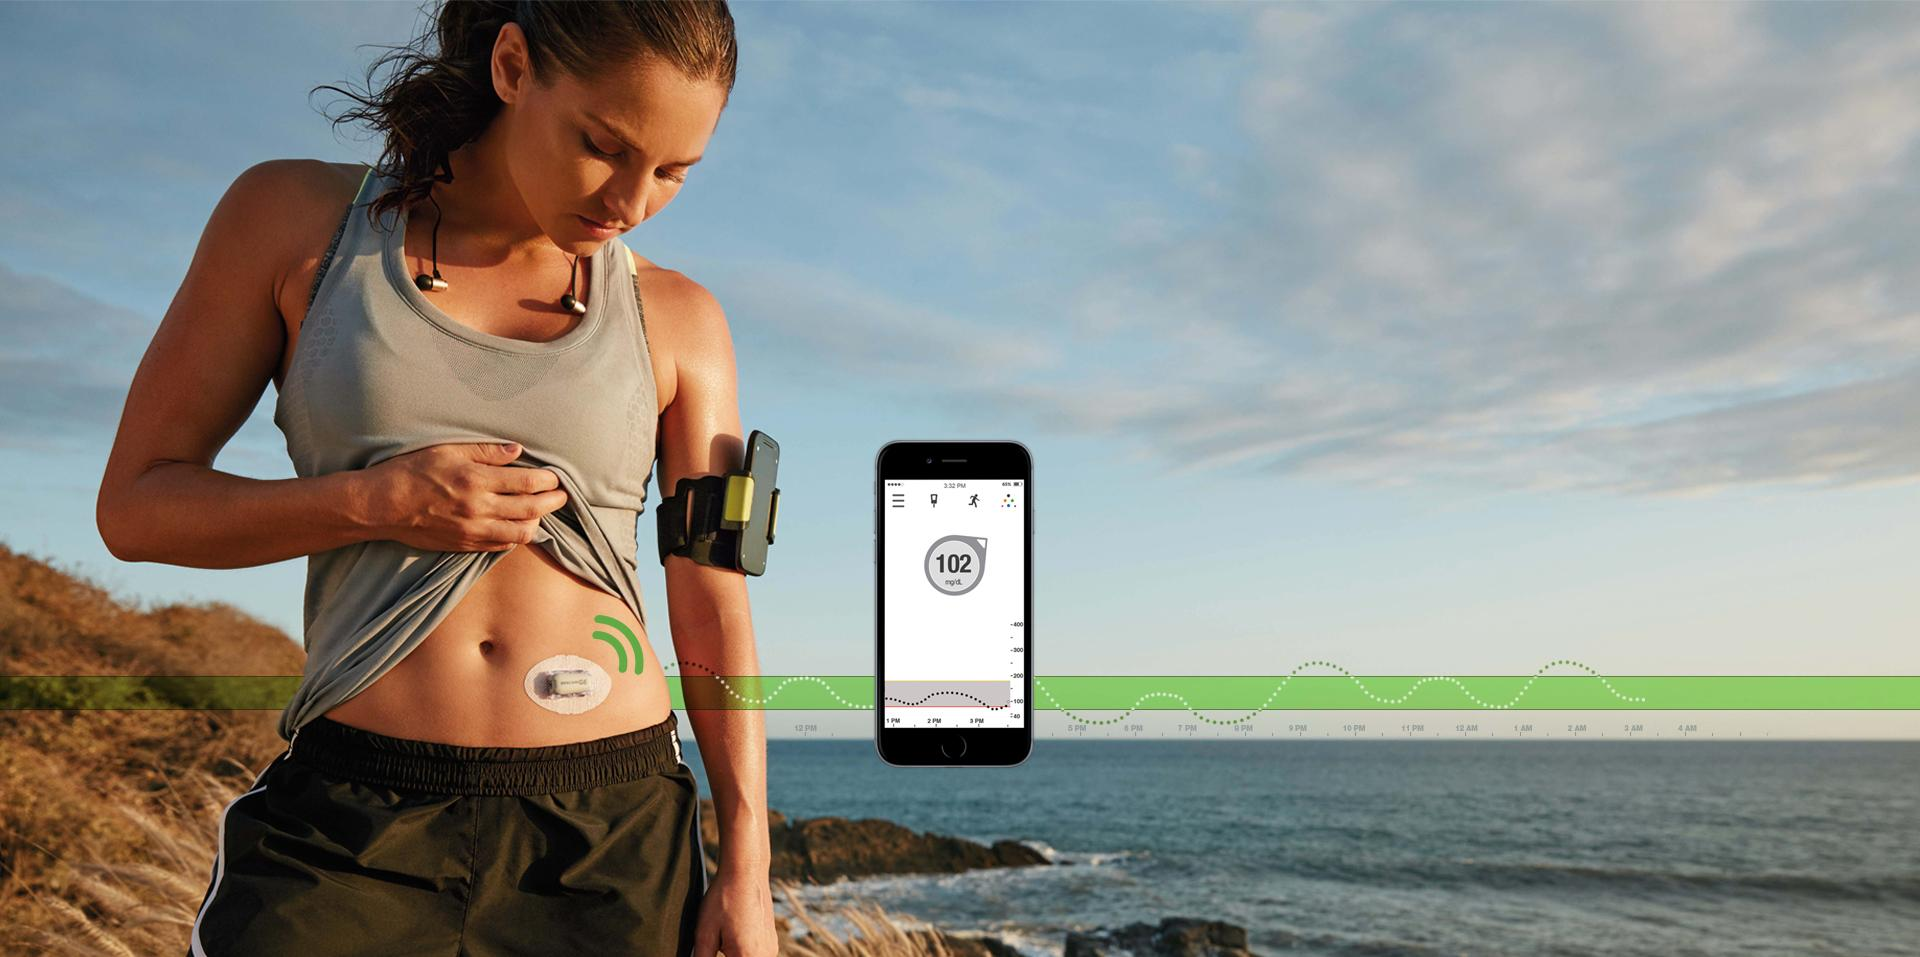 Continuous Glucose Monitoring For The Iphone Generation?